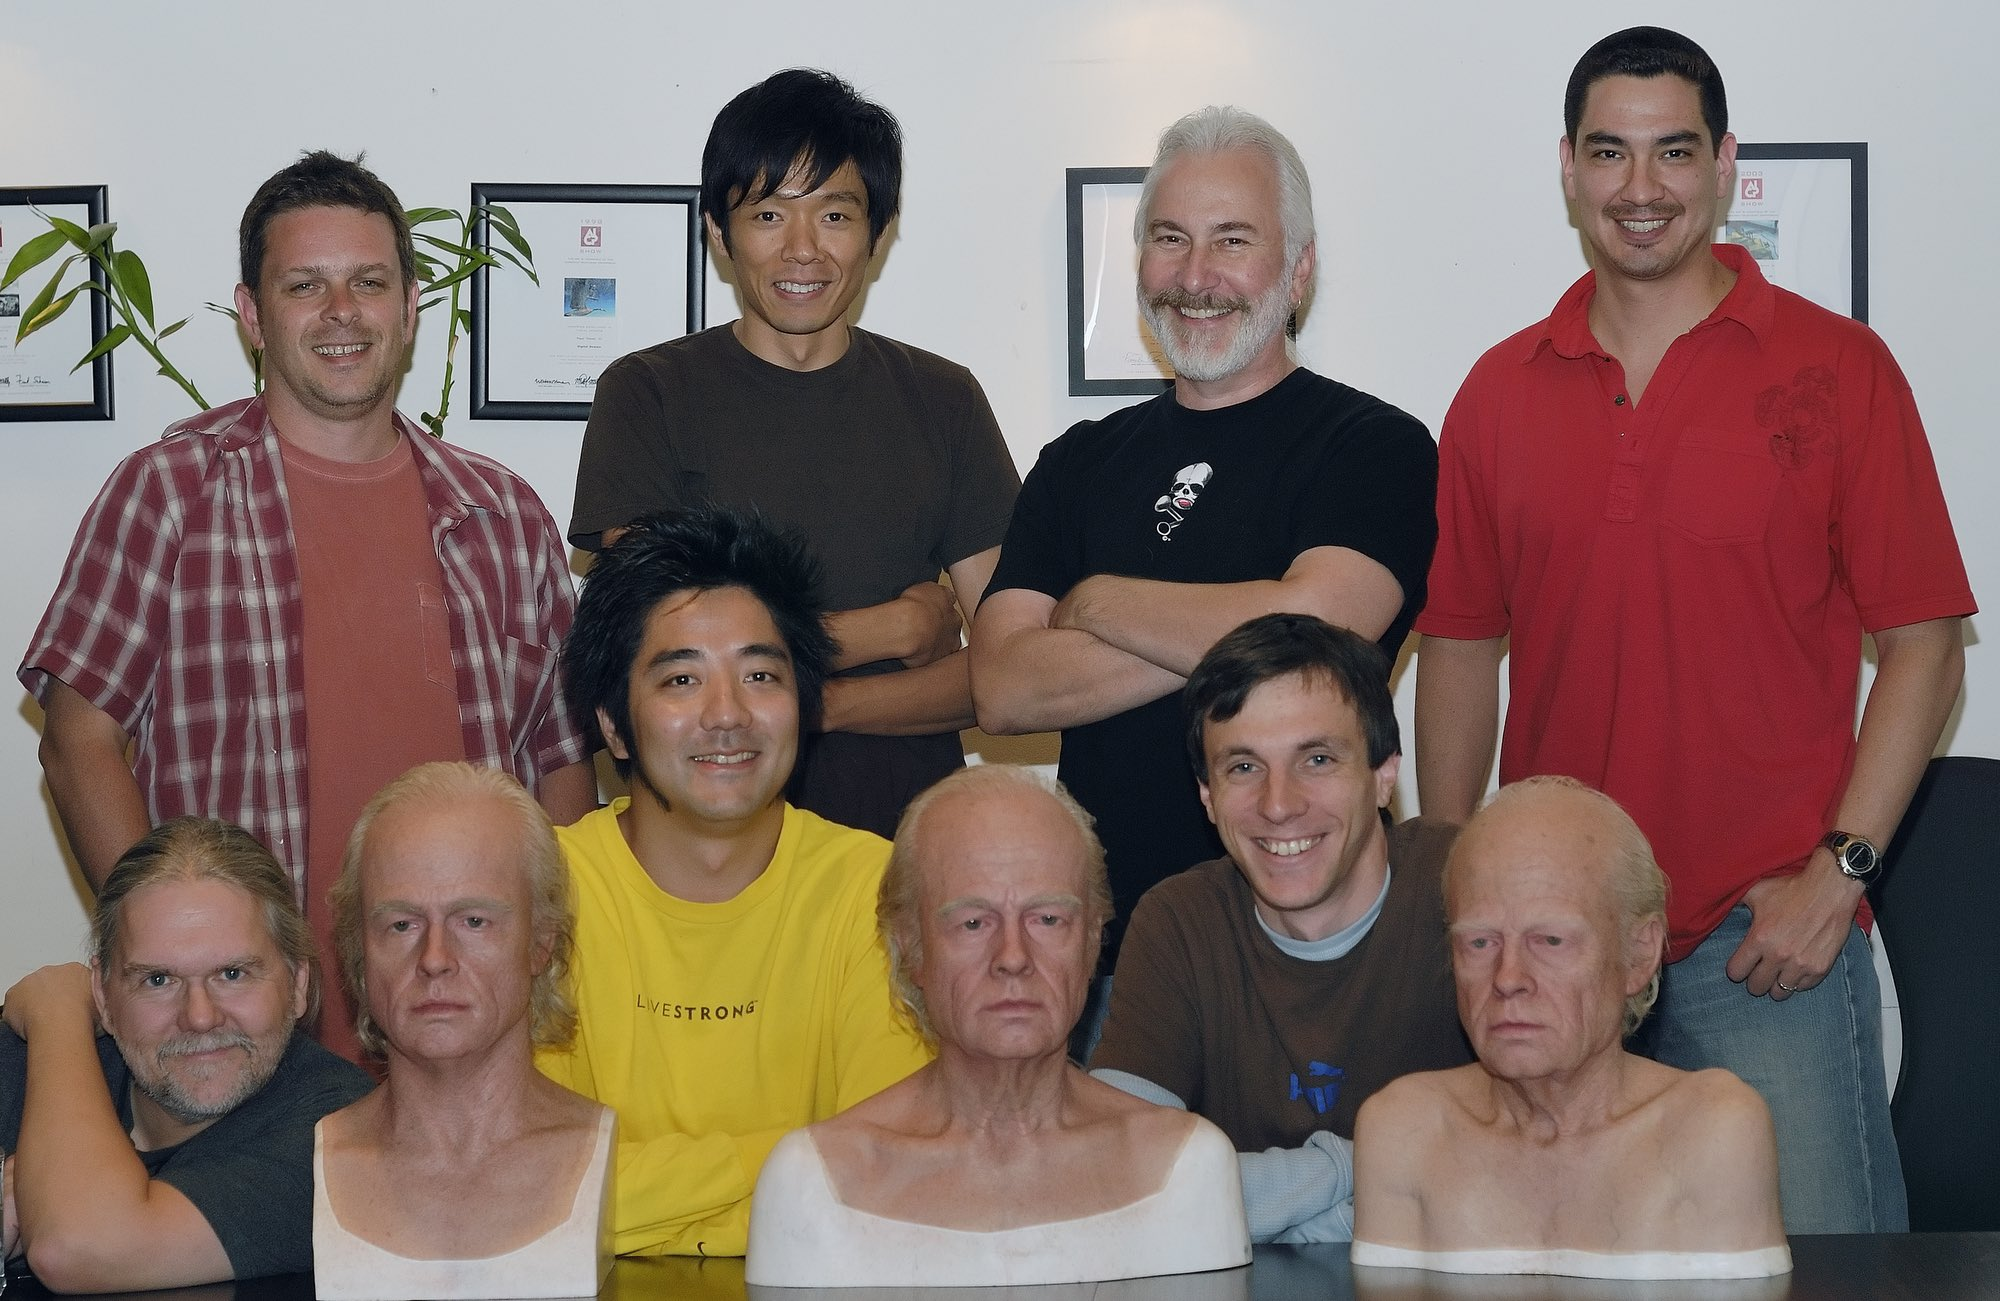 2006. Rick Baker's Cinovation Studios deliver the Brad Pitt heads by Kazu Hiro to Digital Domain